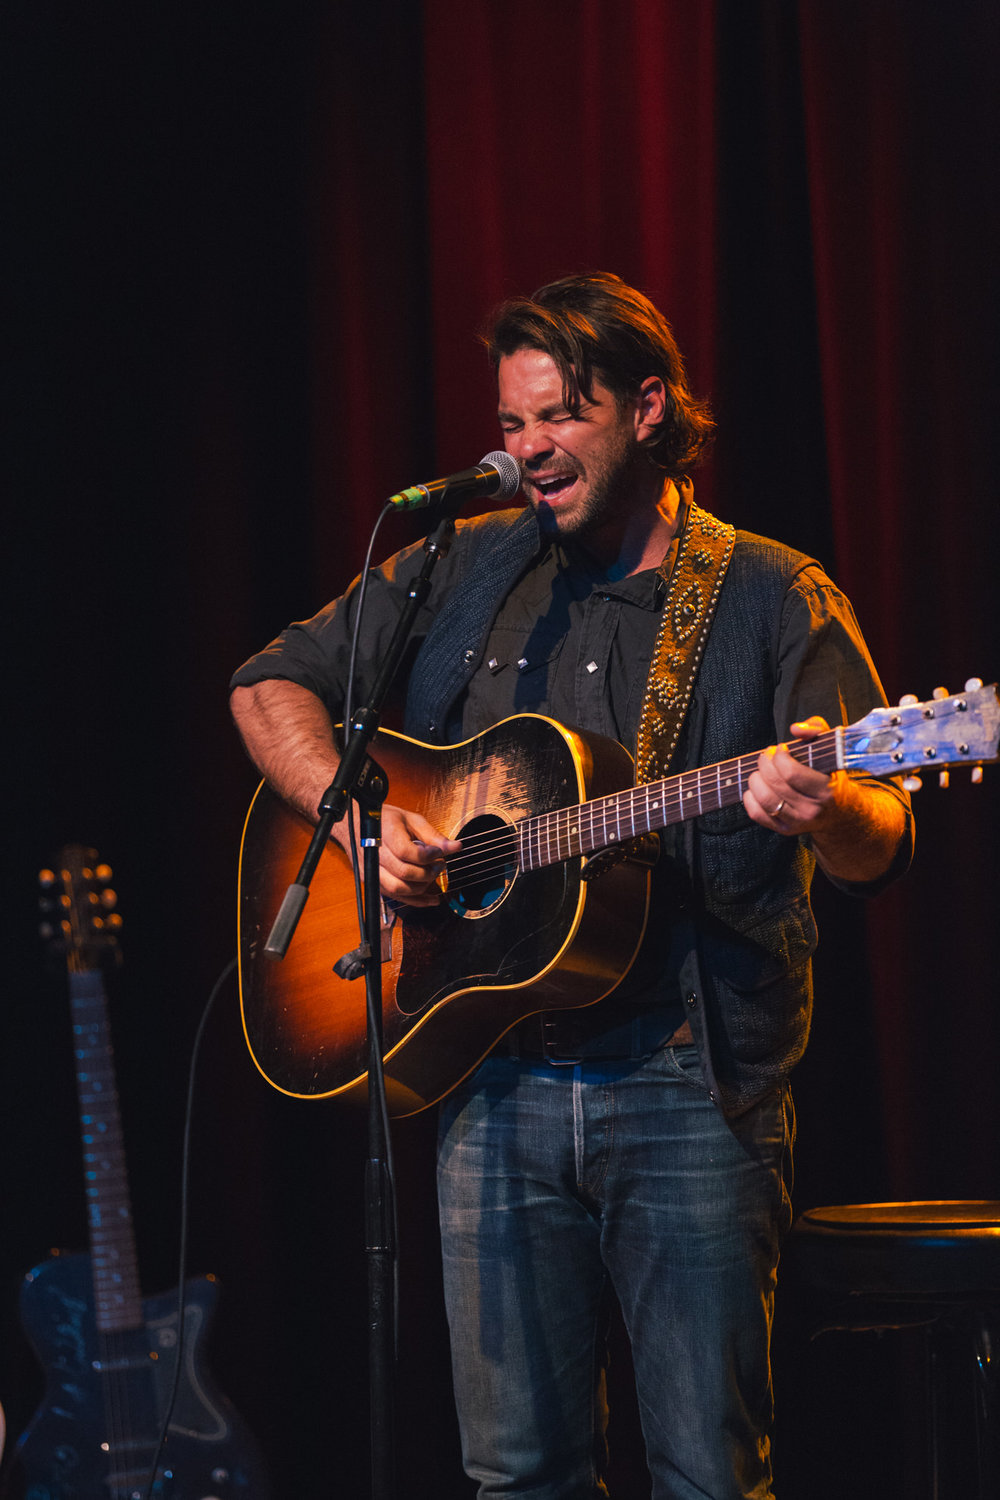 Taylor-Lauren-Barker-Zach-Williams-The-Lone-Bellow-concert-photography-3.jpg